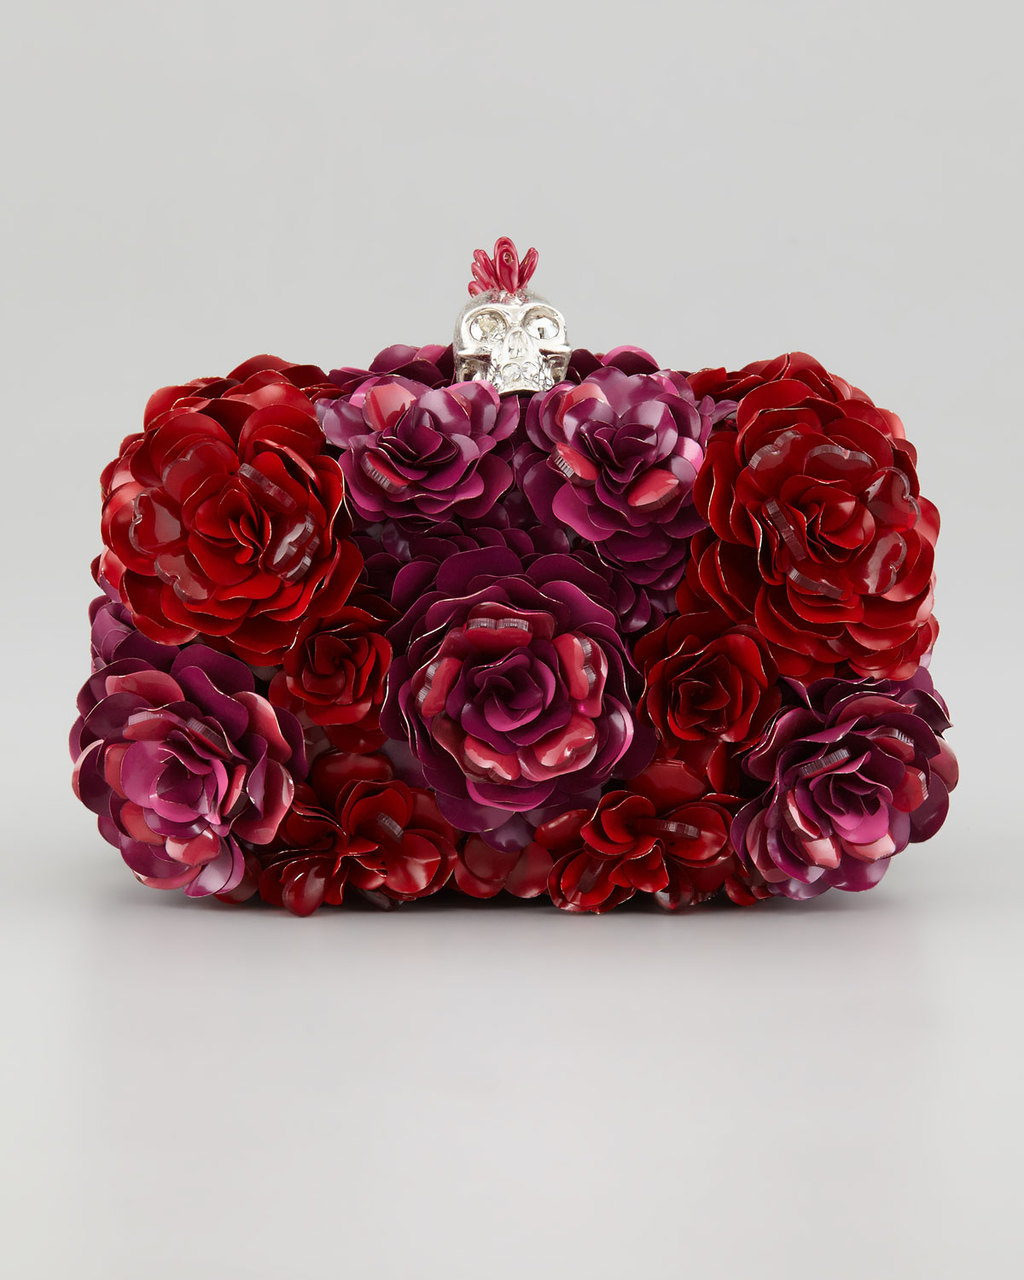 Red-rose-bridal-clutch-by-alexander-mcqueen.full